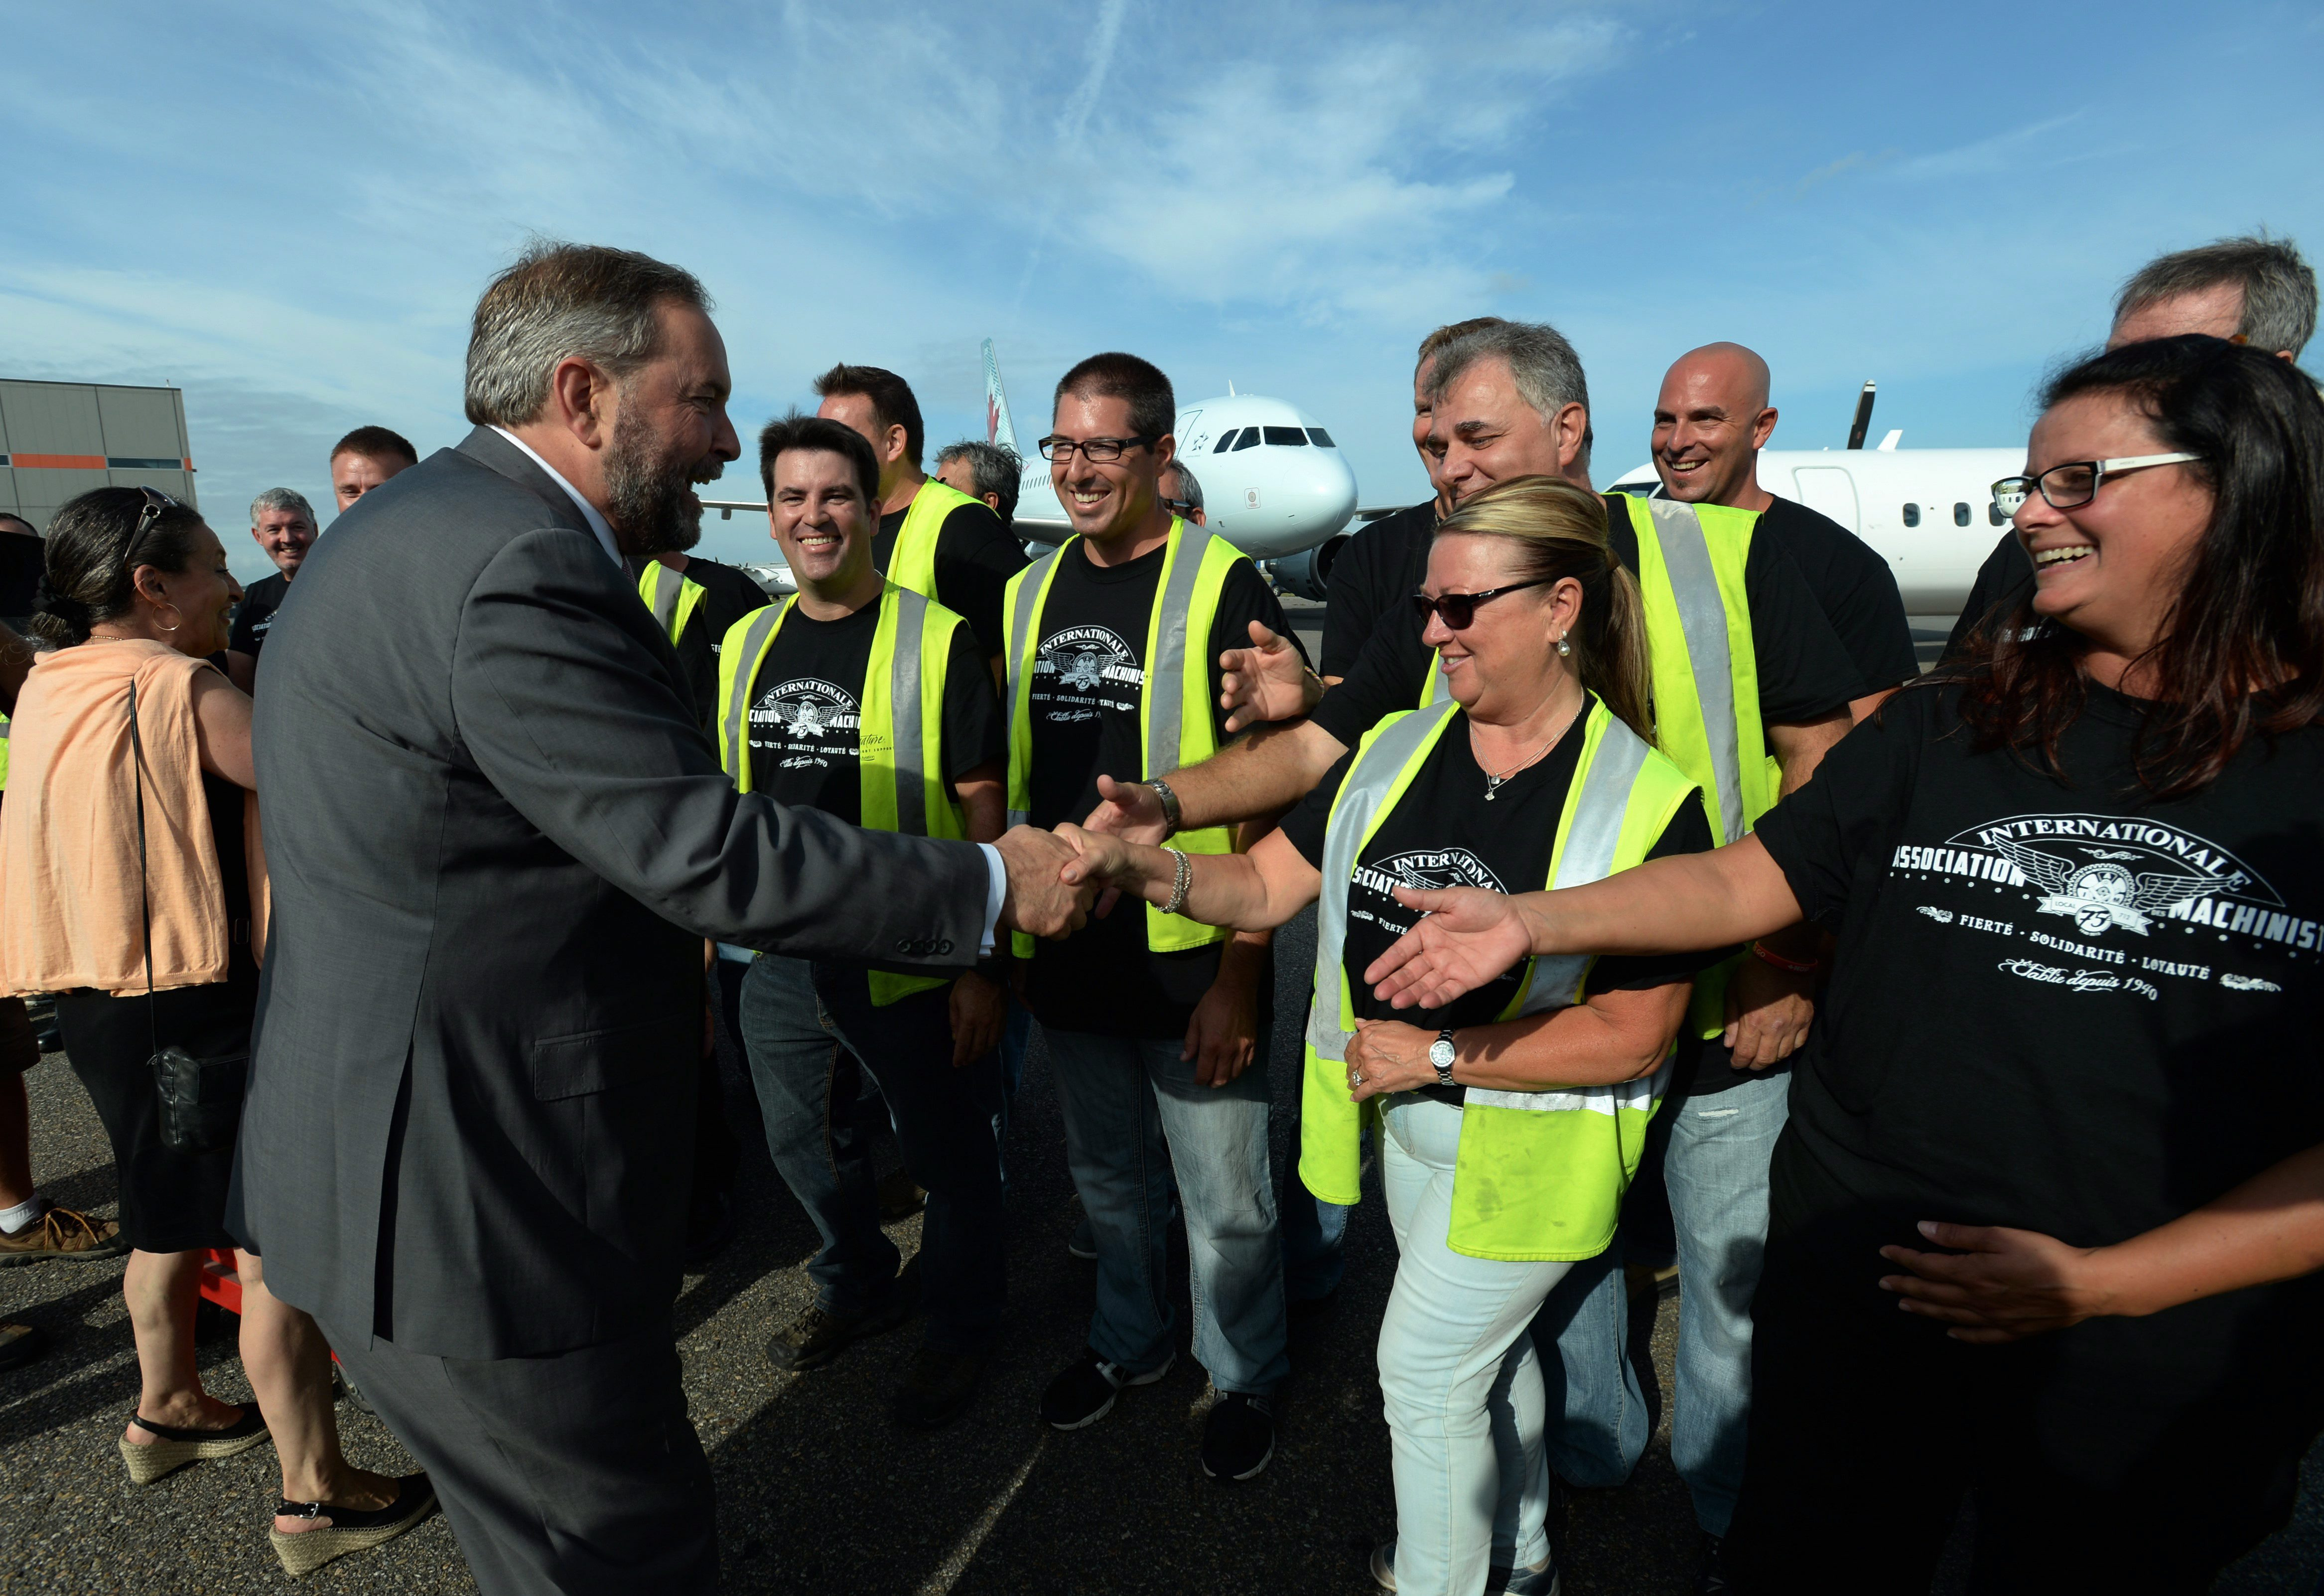 NDP leader Thomas Mulcair shakes hands with aerospace workers as he makes a campaign stop in Montreal on Tuesday, September 8, 2015. THE CANADIAN PRESS/Sean Kilpatrick